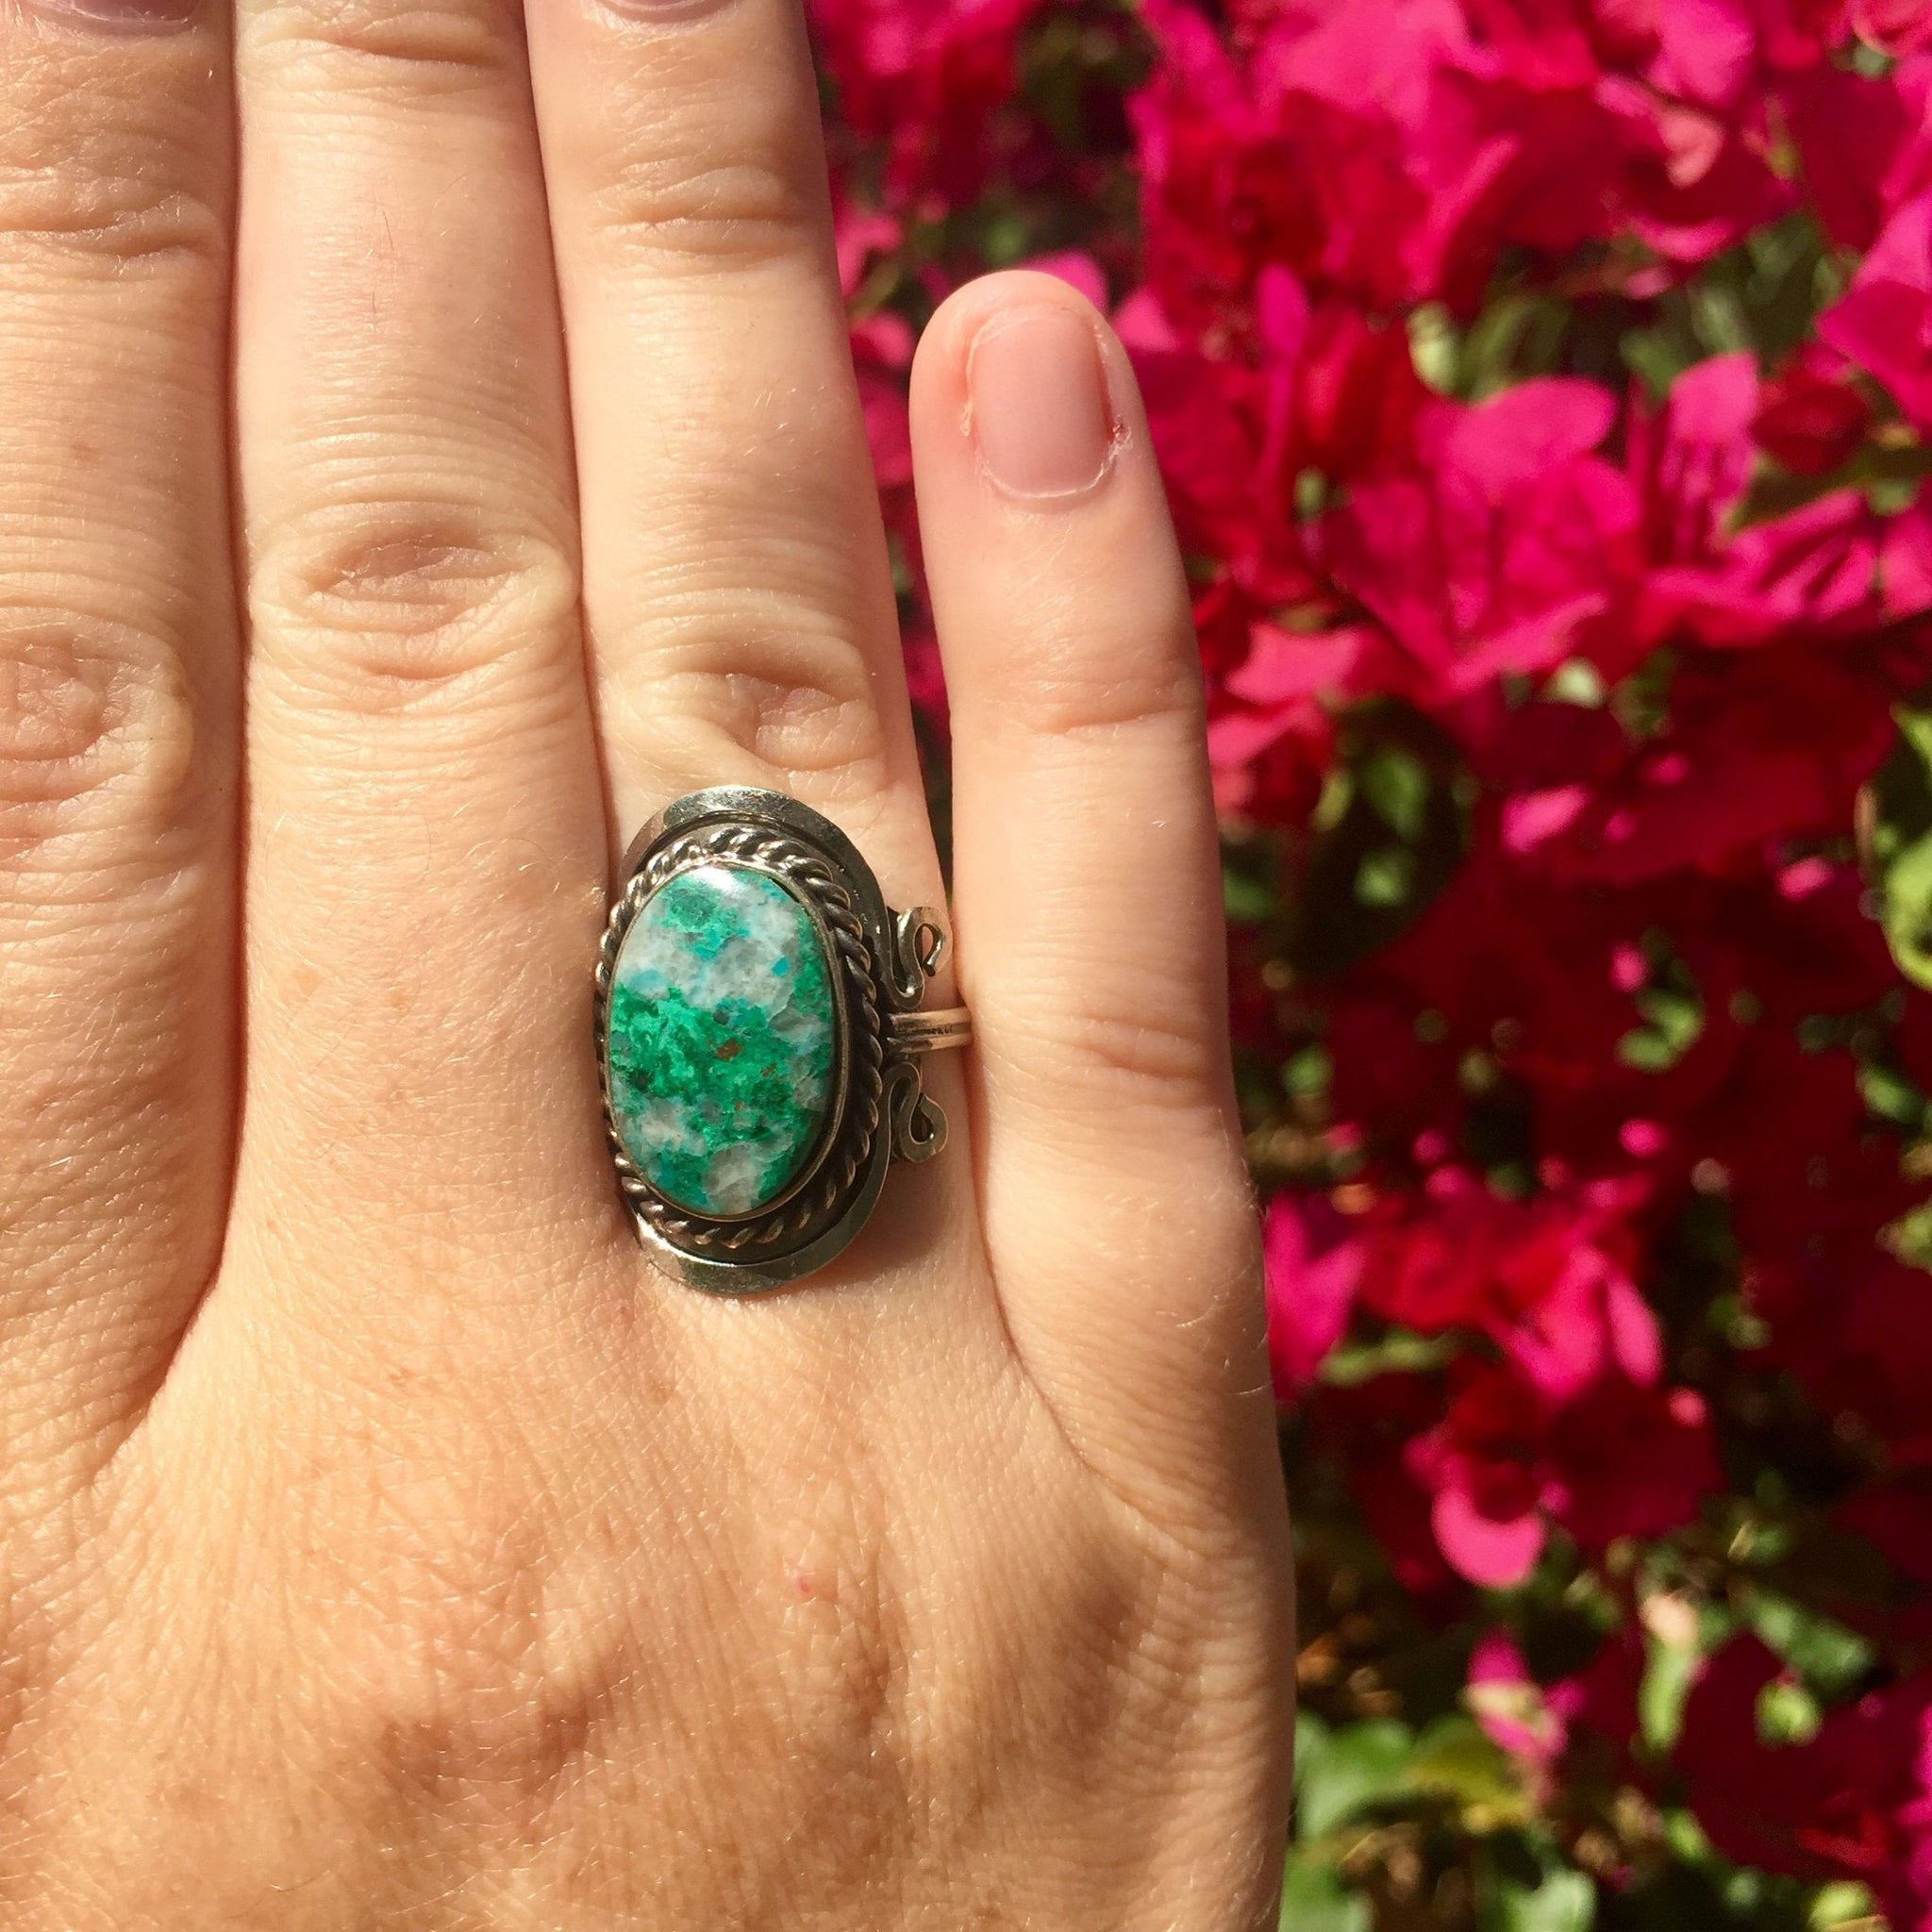 Chrysocolla Crystal Ring - Sparkle Rock Pop